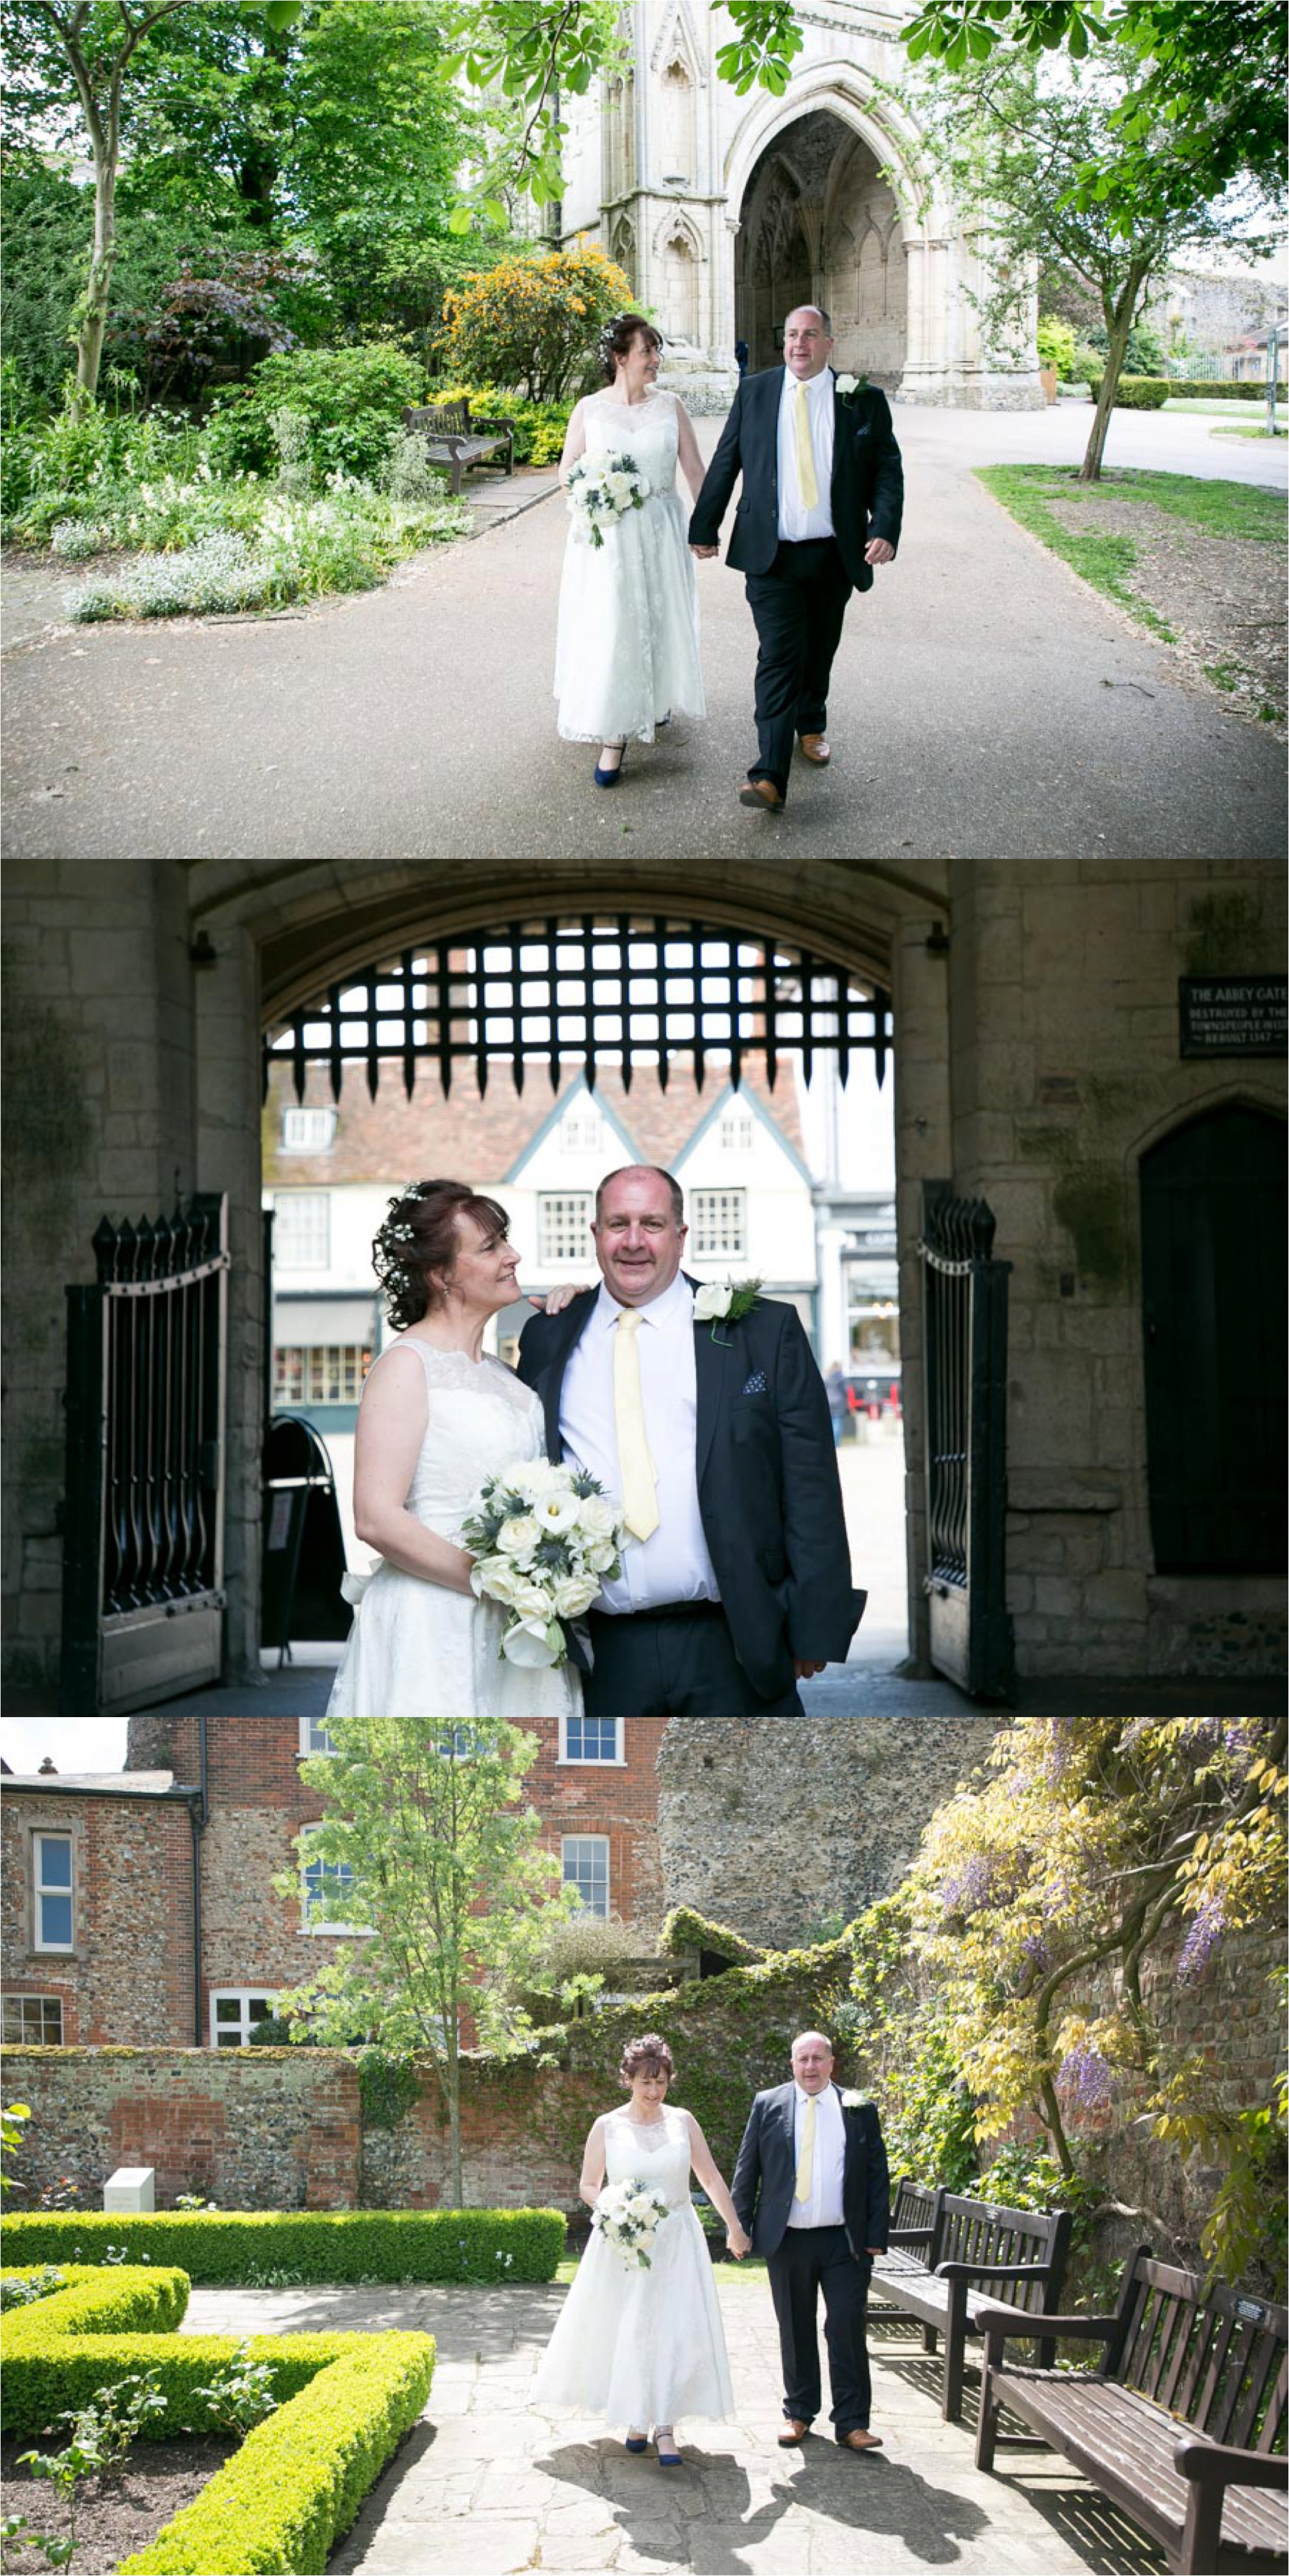 Wedding photography at Athenaeum Bury St Edmunds, and Abbey Gardens, Suffolk